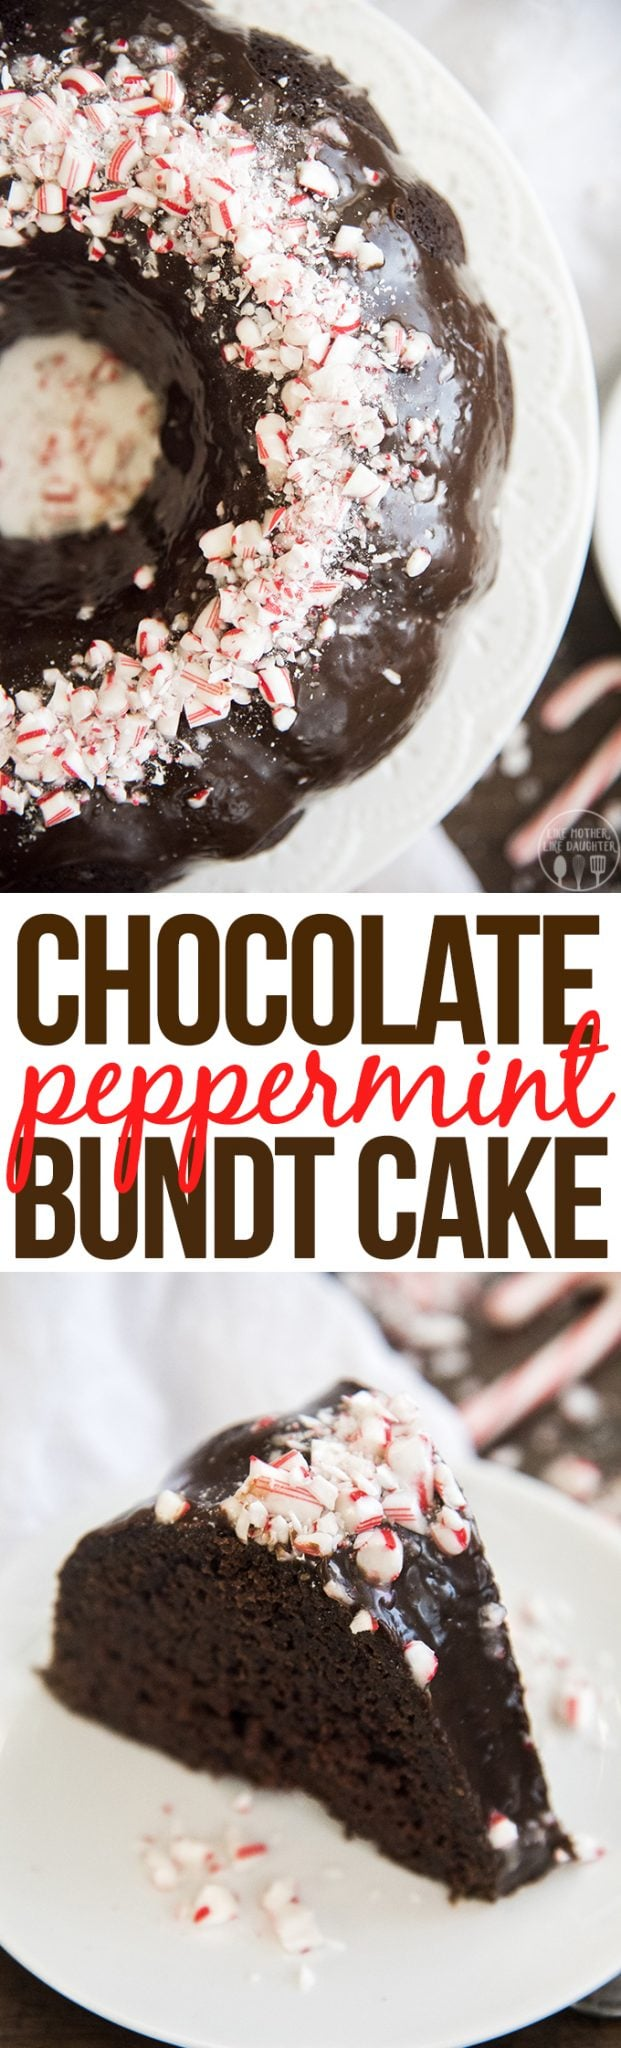 Peppermint Chocolate bundt cake is the best holiday cake! Its moist, sweet, and rich with the perfect blend of chocolate and peppermint throughout, and topped with crunchy candy cane pieces!